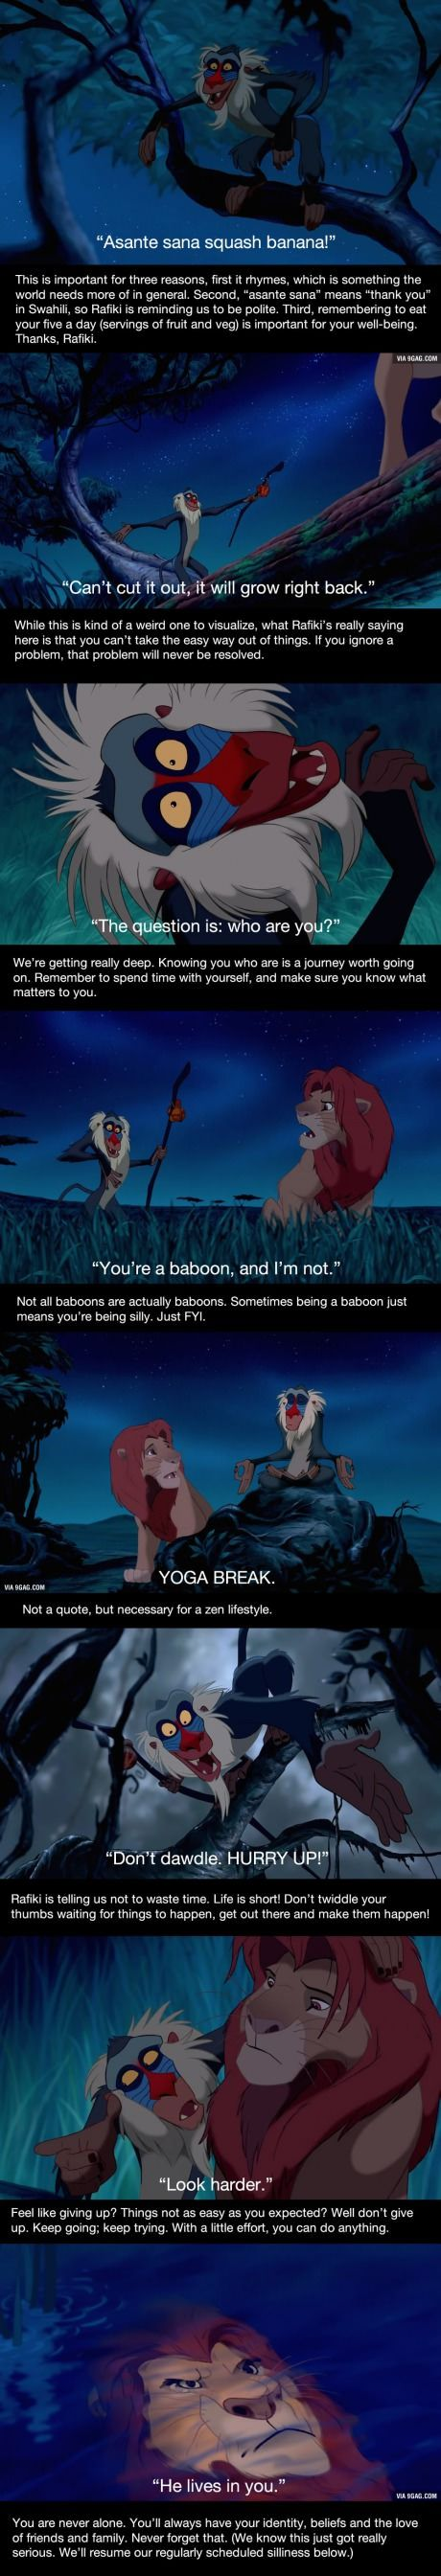 10 Wise Rafiki Quotes You Need to Read